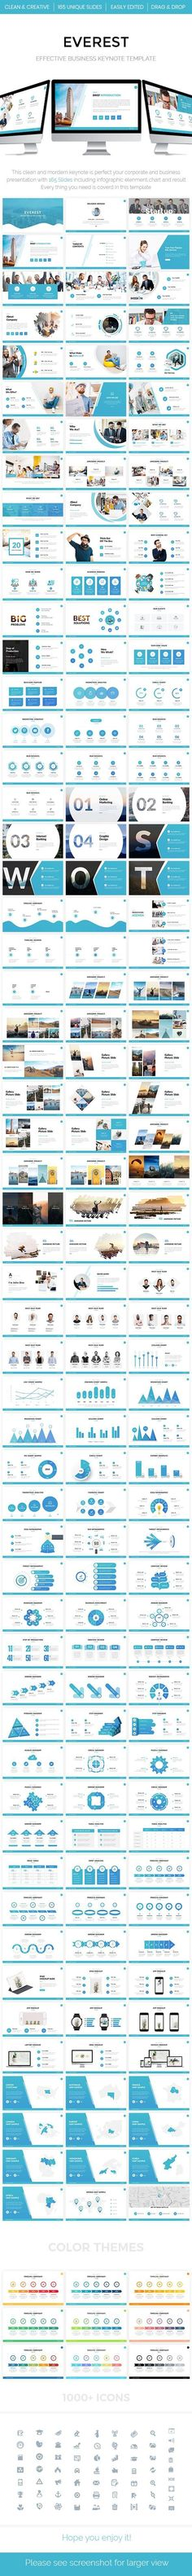 Everest - Effective Business Keynote Template 2018 - Keynote Business Presentation Template by Business Powerpoint Templates, Powerpoint Presentation Templates, Keynote Template, Presentation Slides, Business Presentation, Presentation Design, Web Design, Graphic Design, Pitch